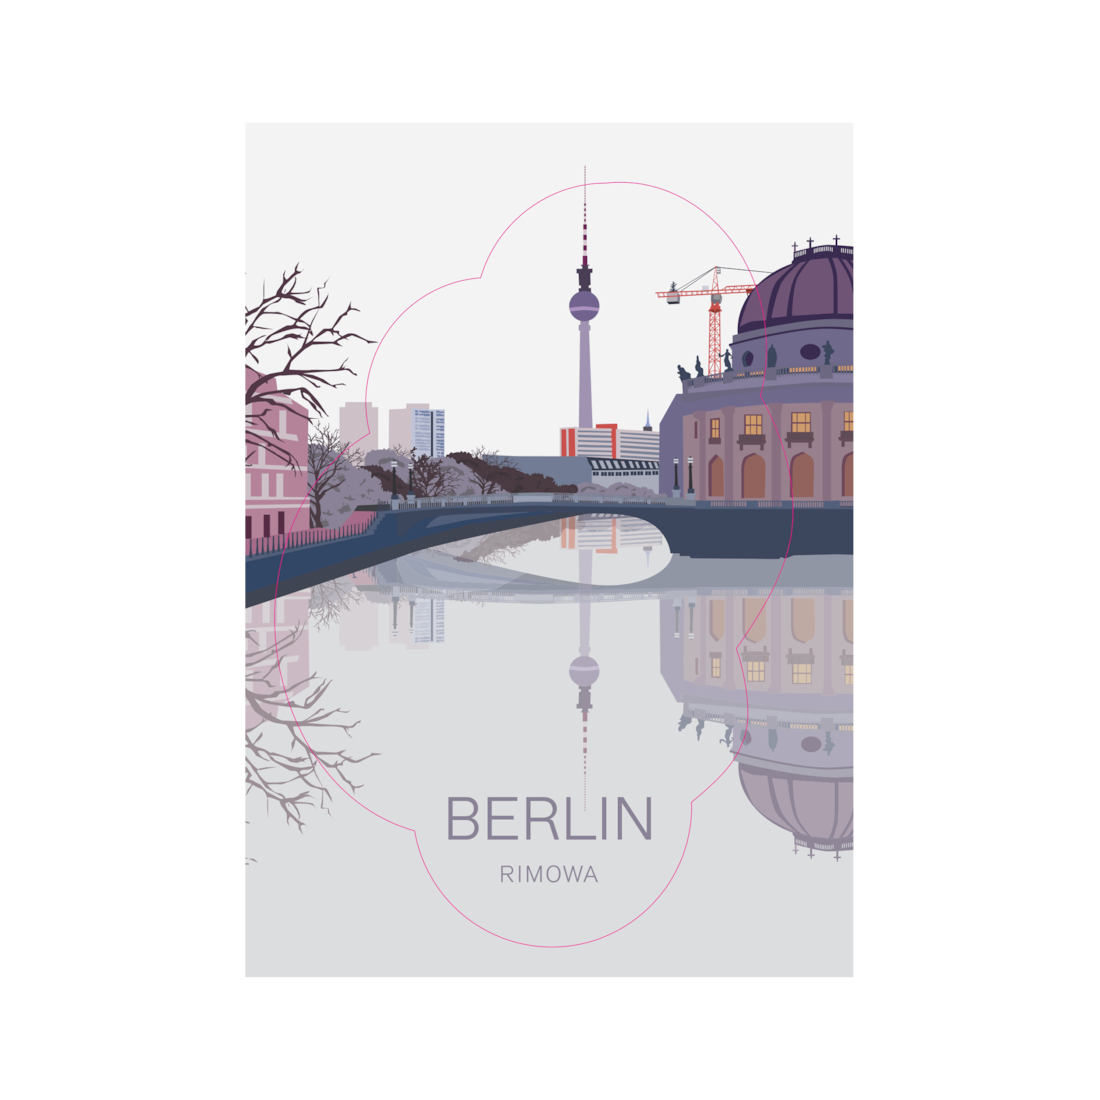 Berlin - Stickers